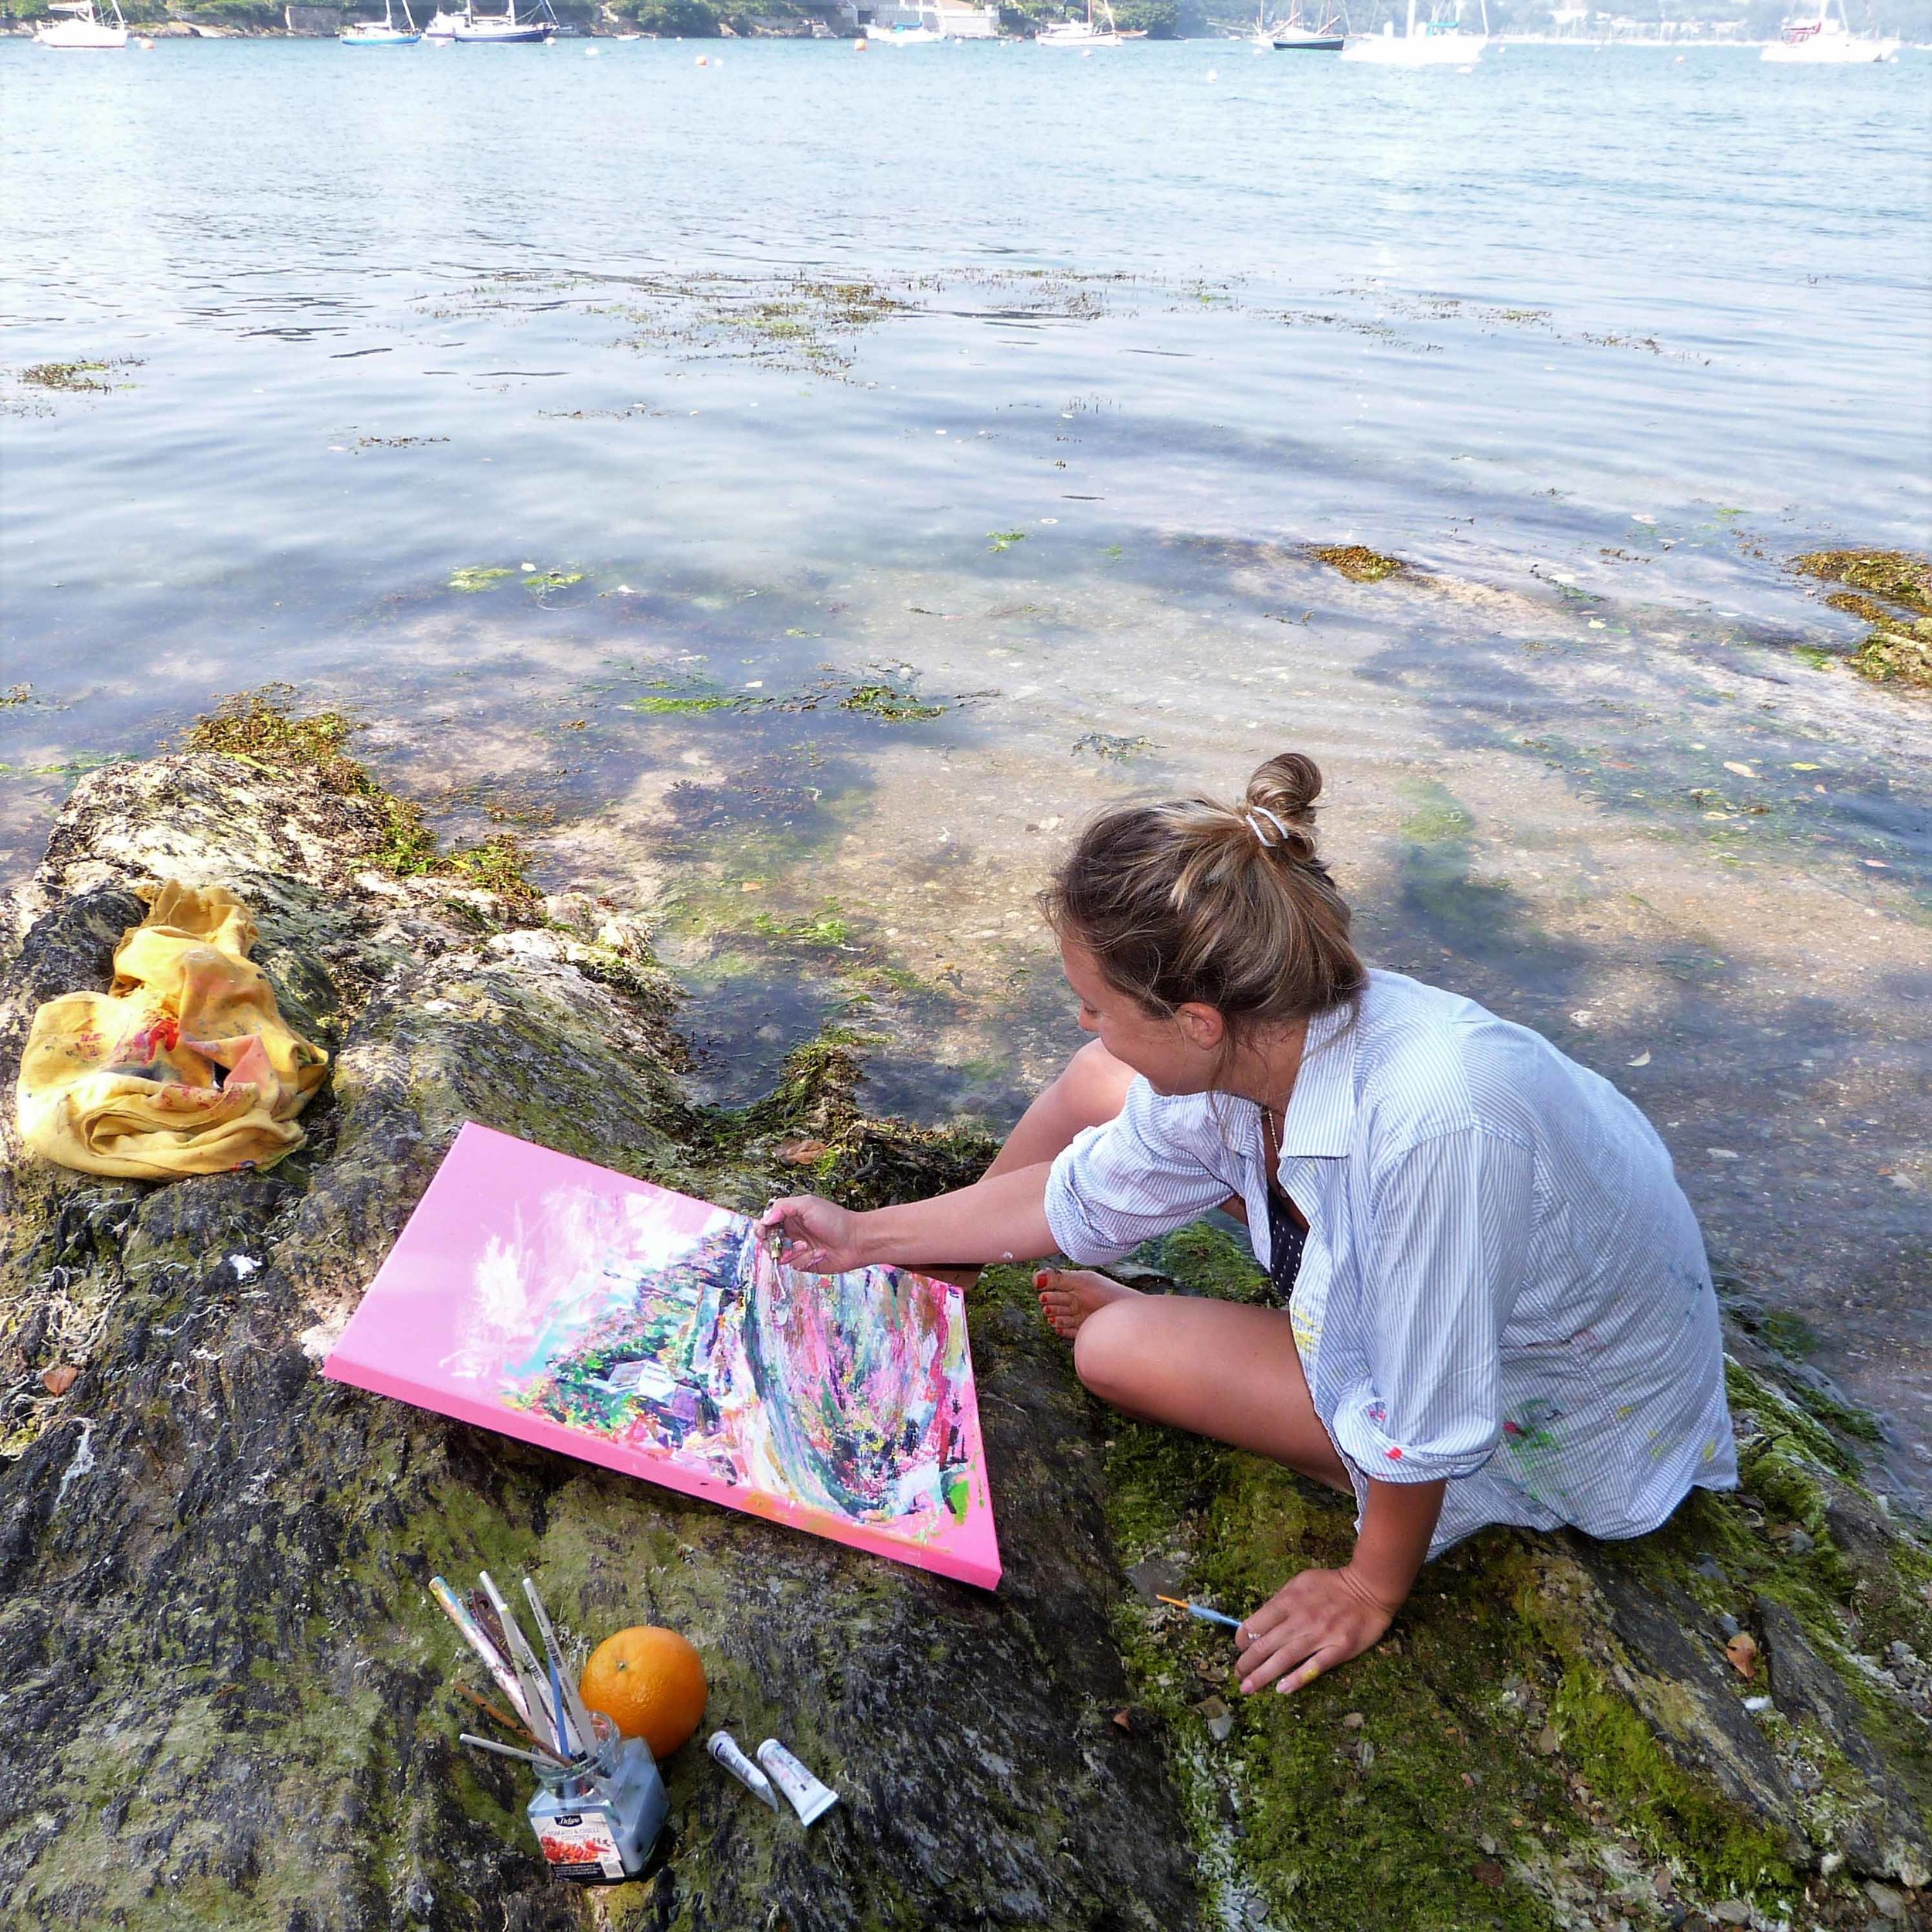 170711 Chloë Tinsley painting the Cornish Idyll, taken by Matthew Dale low res.jpg